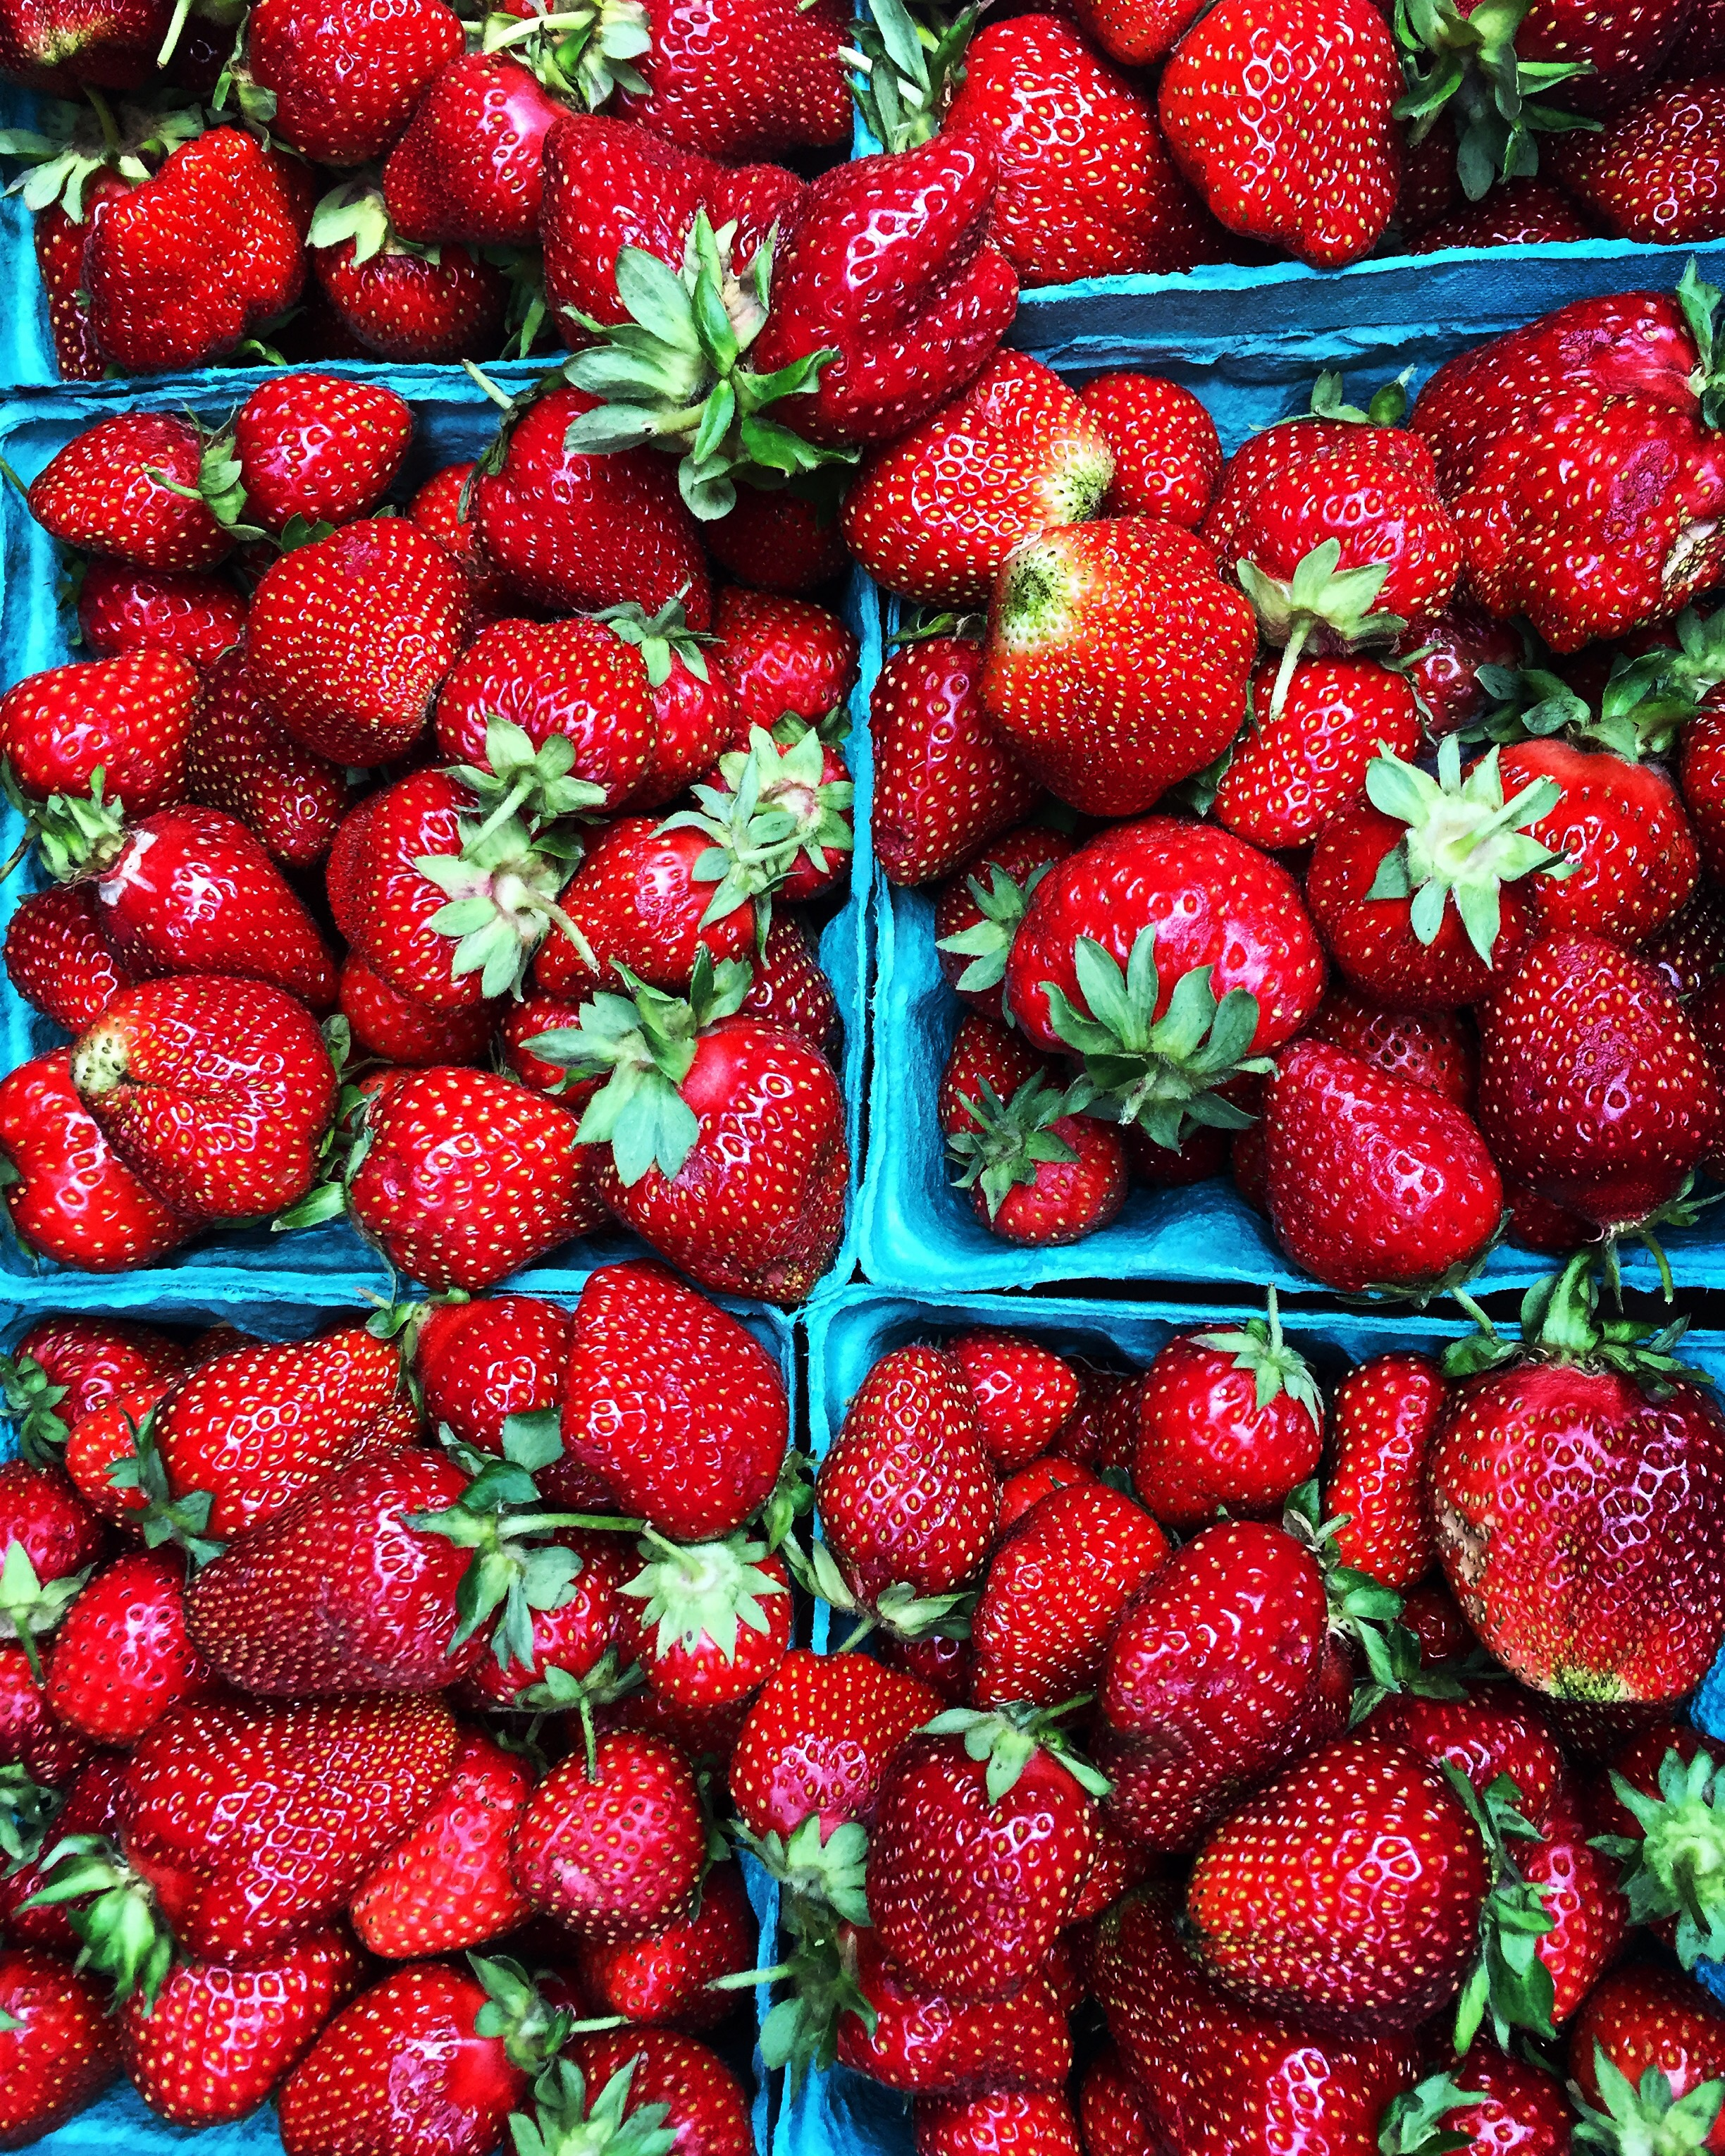 Trauger's Strawberries// Kintnersville, Pennsylvania